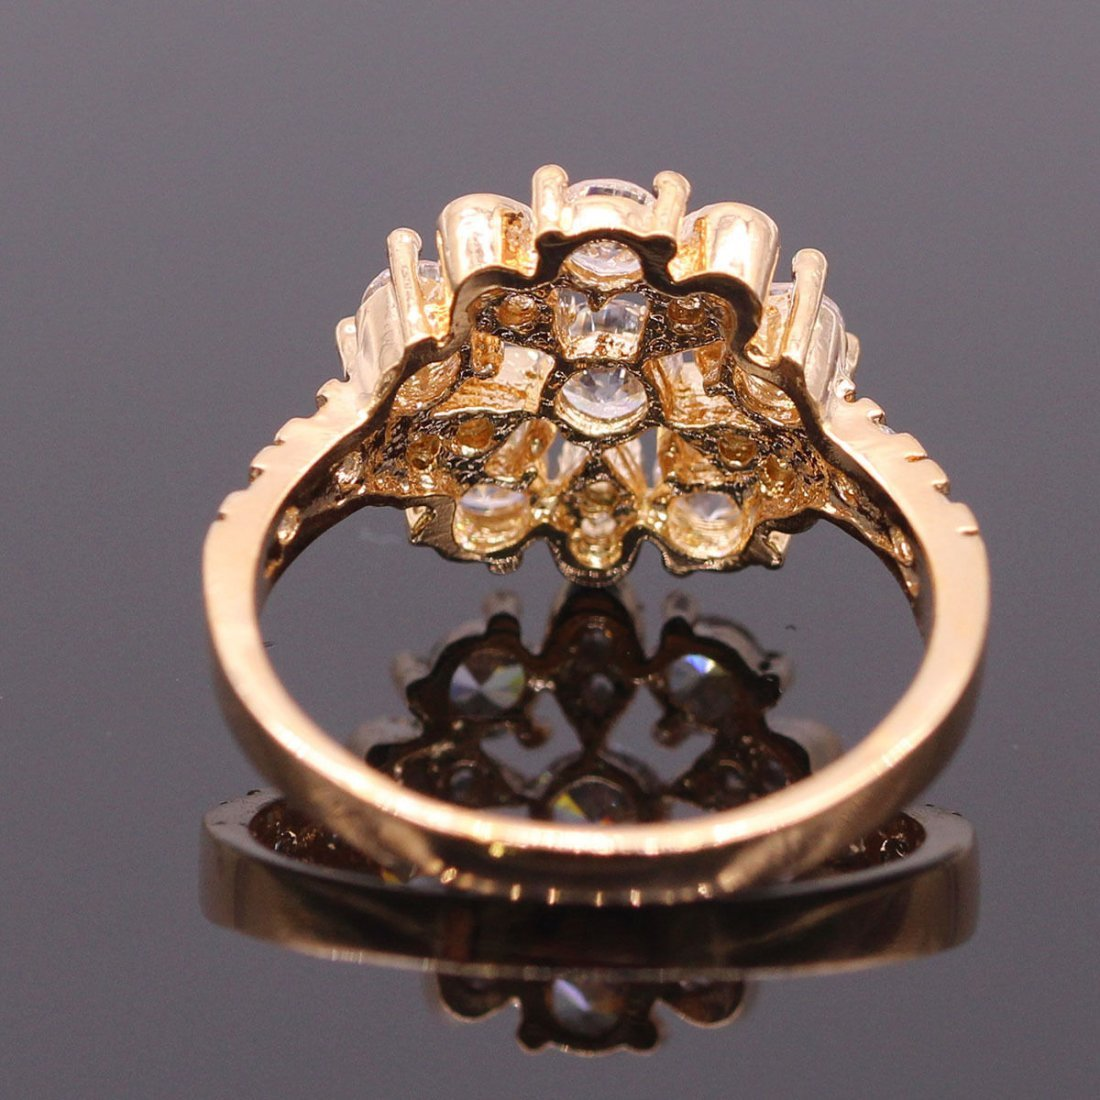 White Zircon Crystal Ring 18K Gold Plated Ring 7 - 2